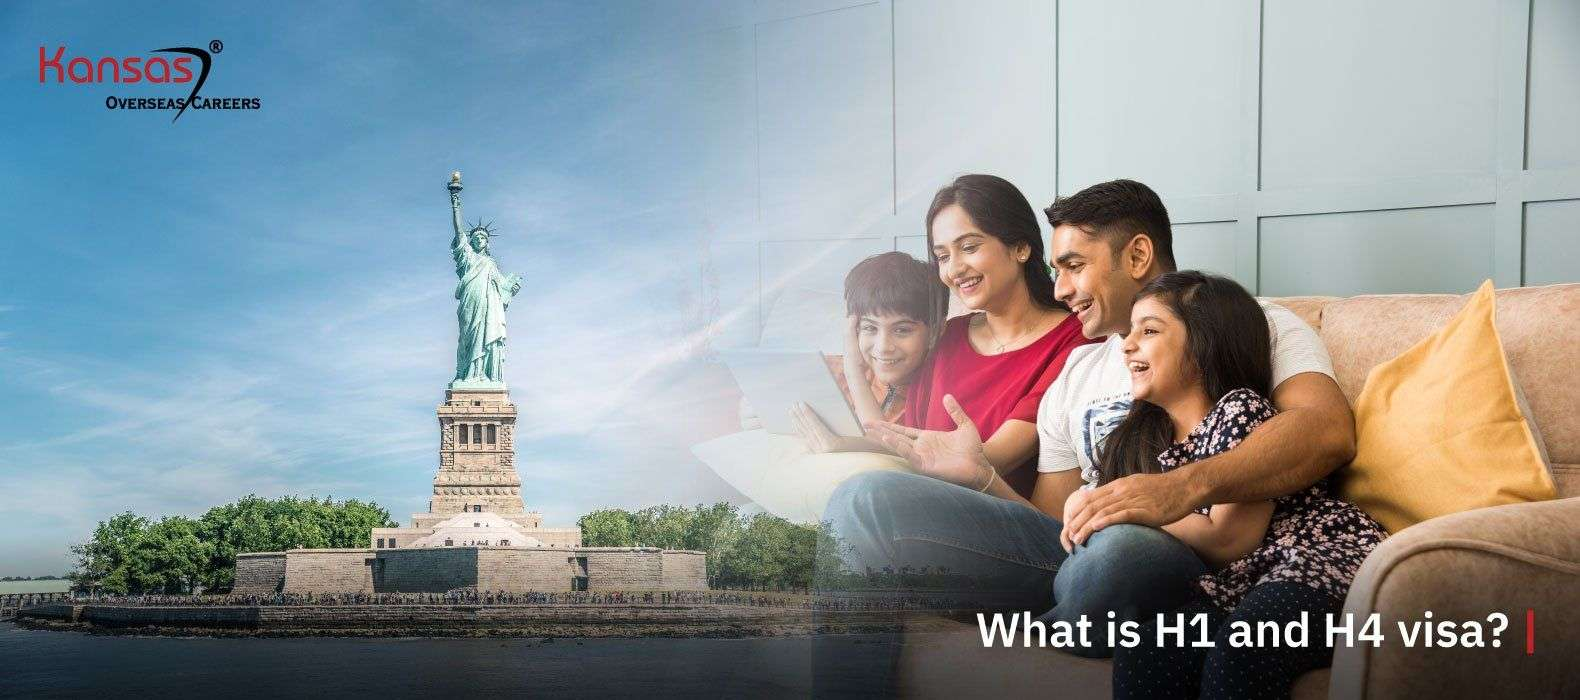 What-is-h1-and-h4-visa